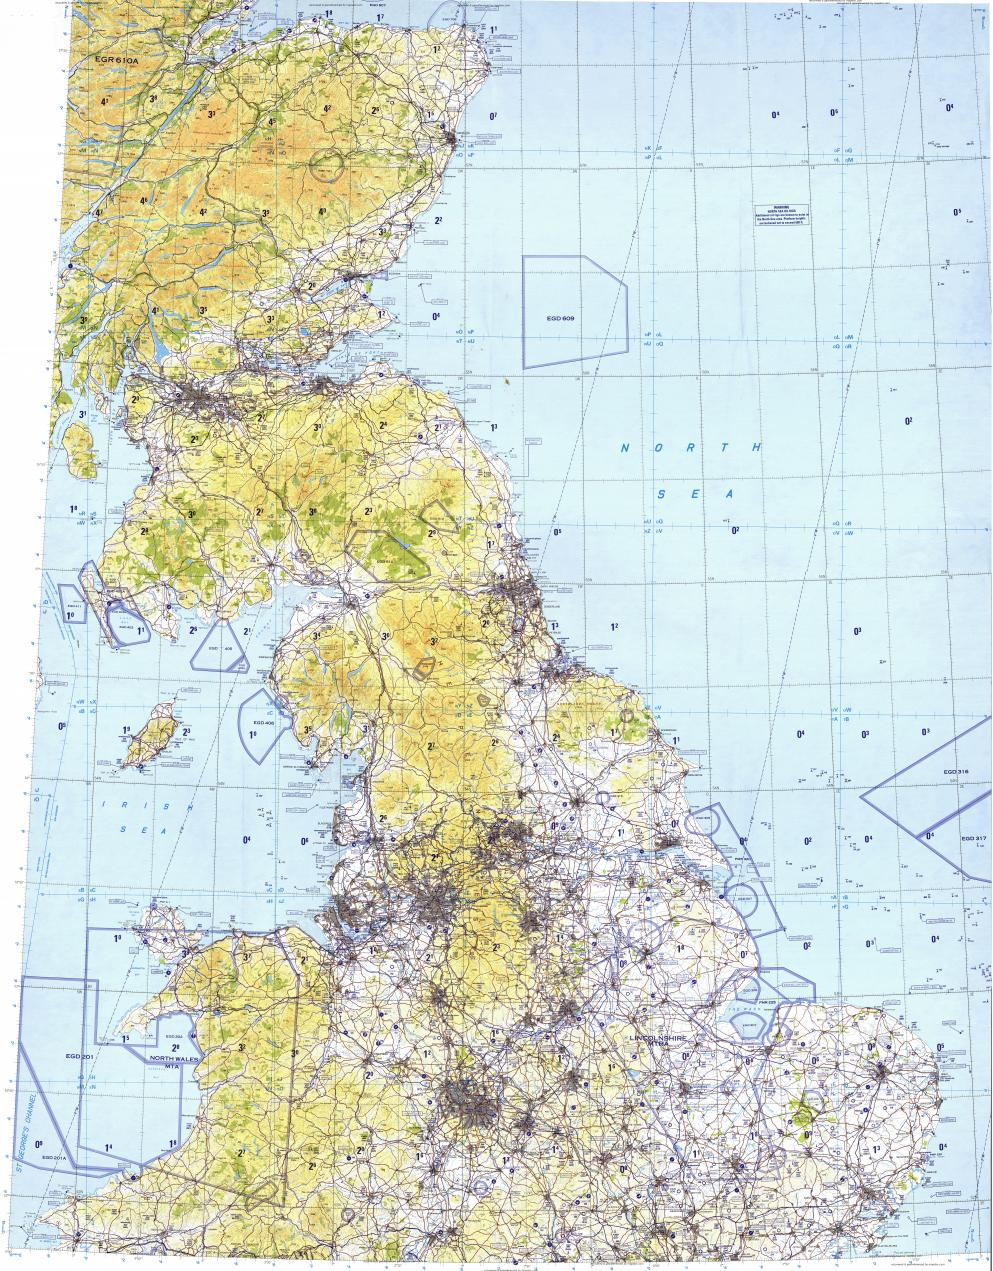 Download Topographic Map In Area Of London Manchester Birmingham